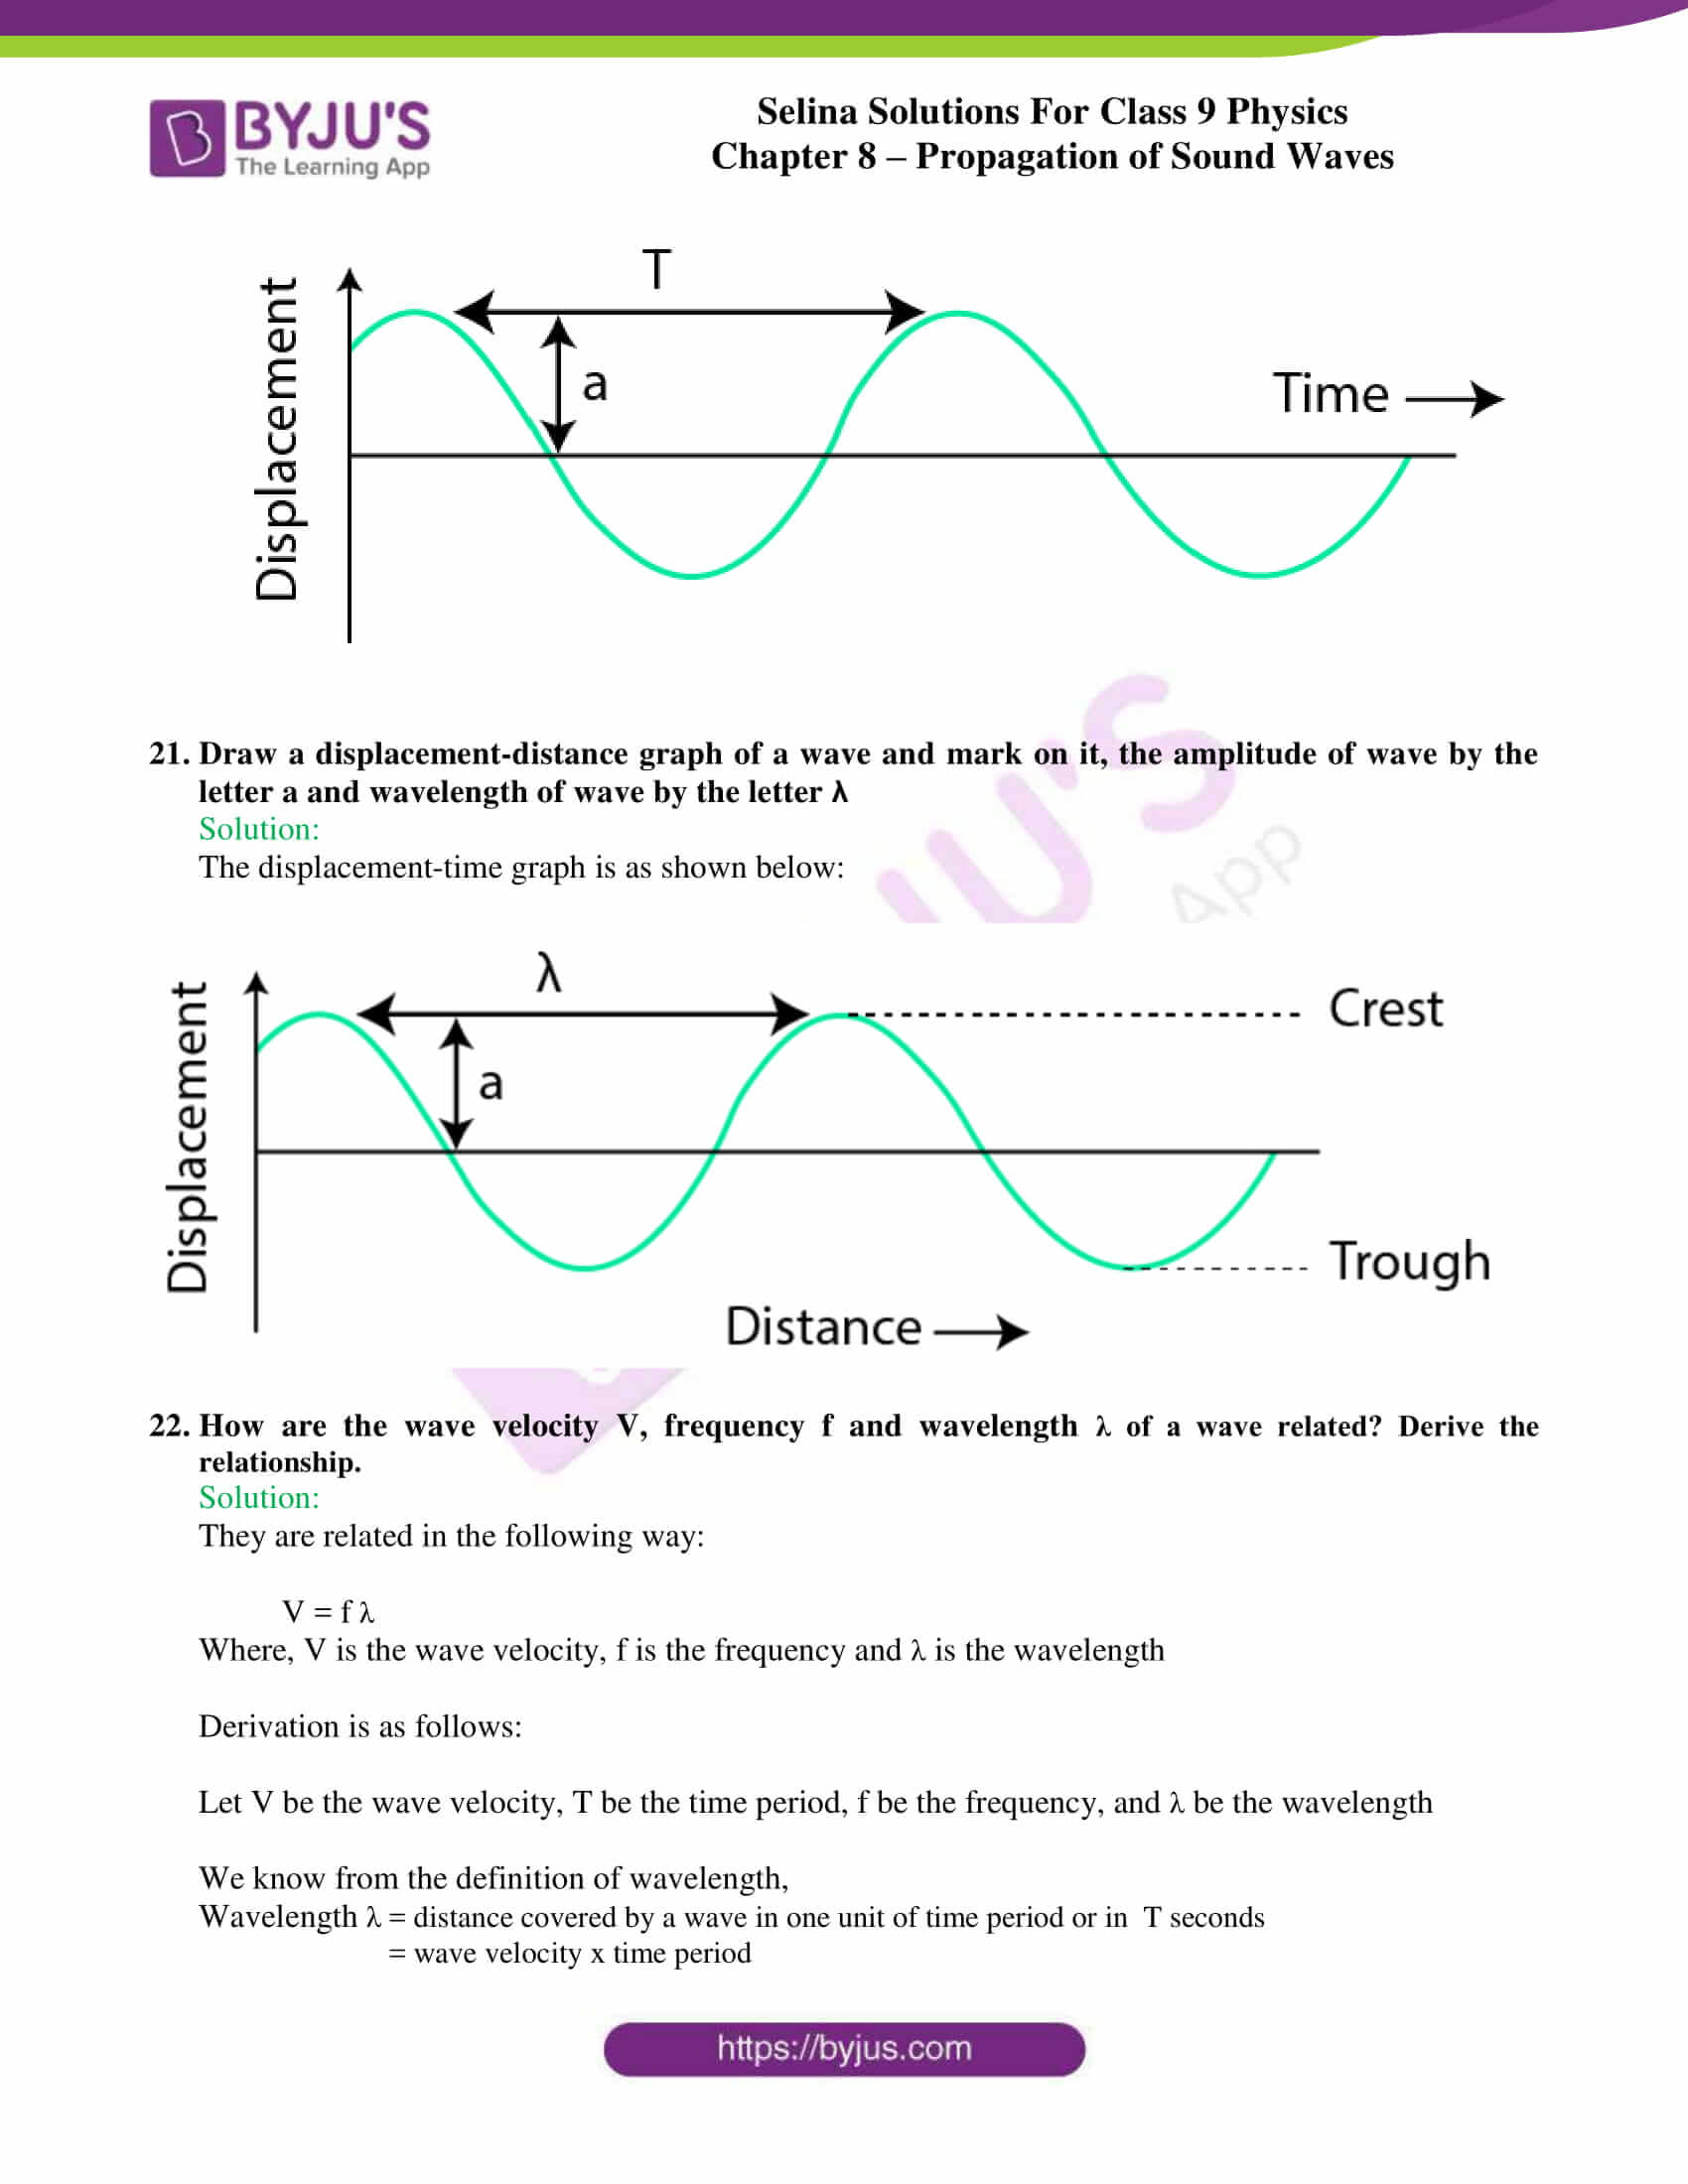 selina solutions class 9 physics chapter 8 Propagation of Sound Waves part 07